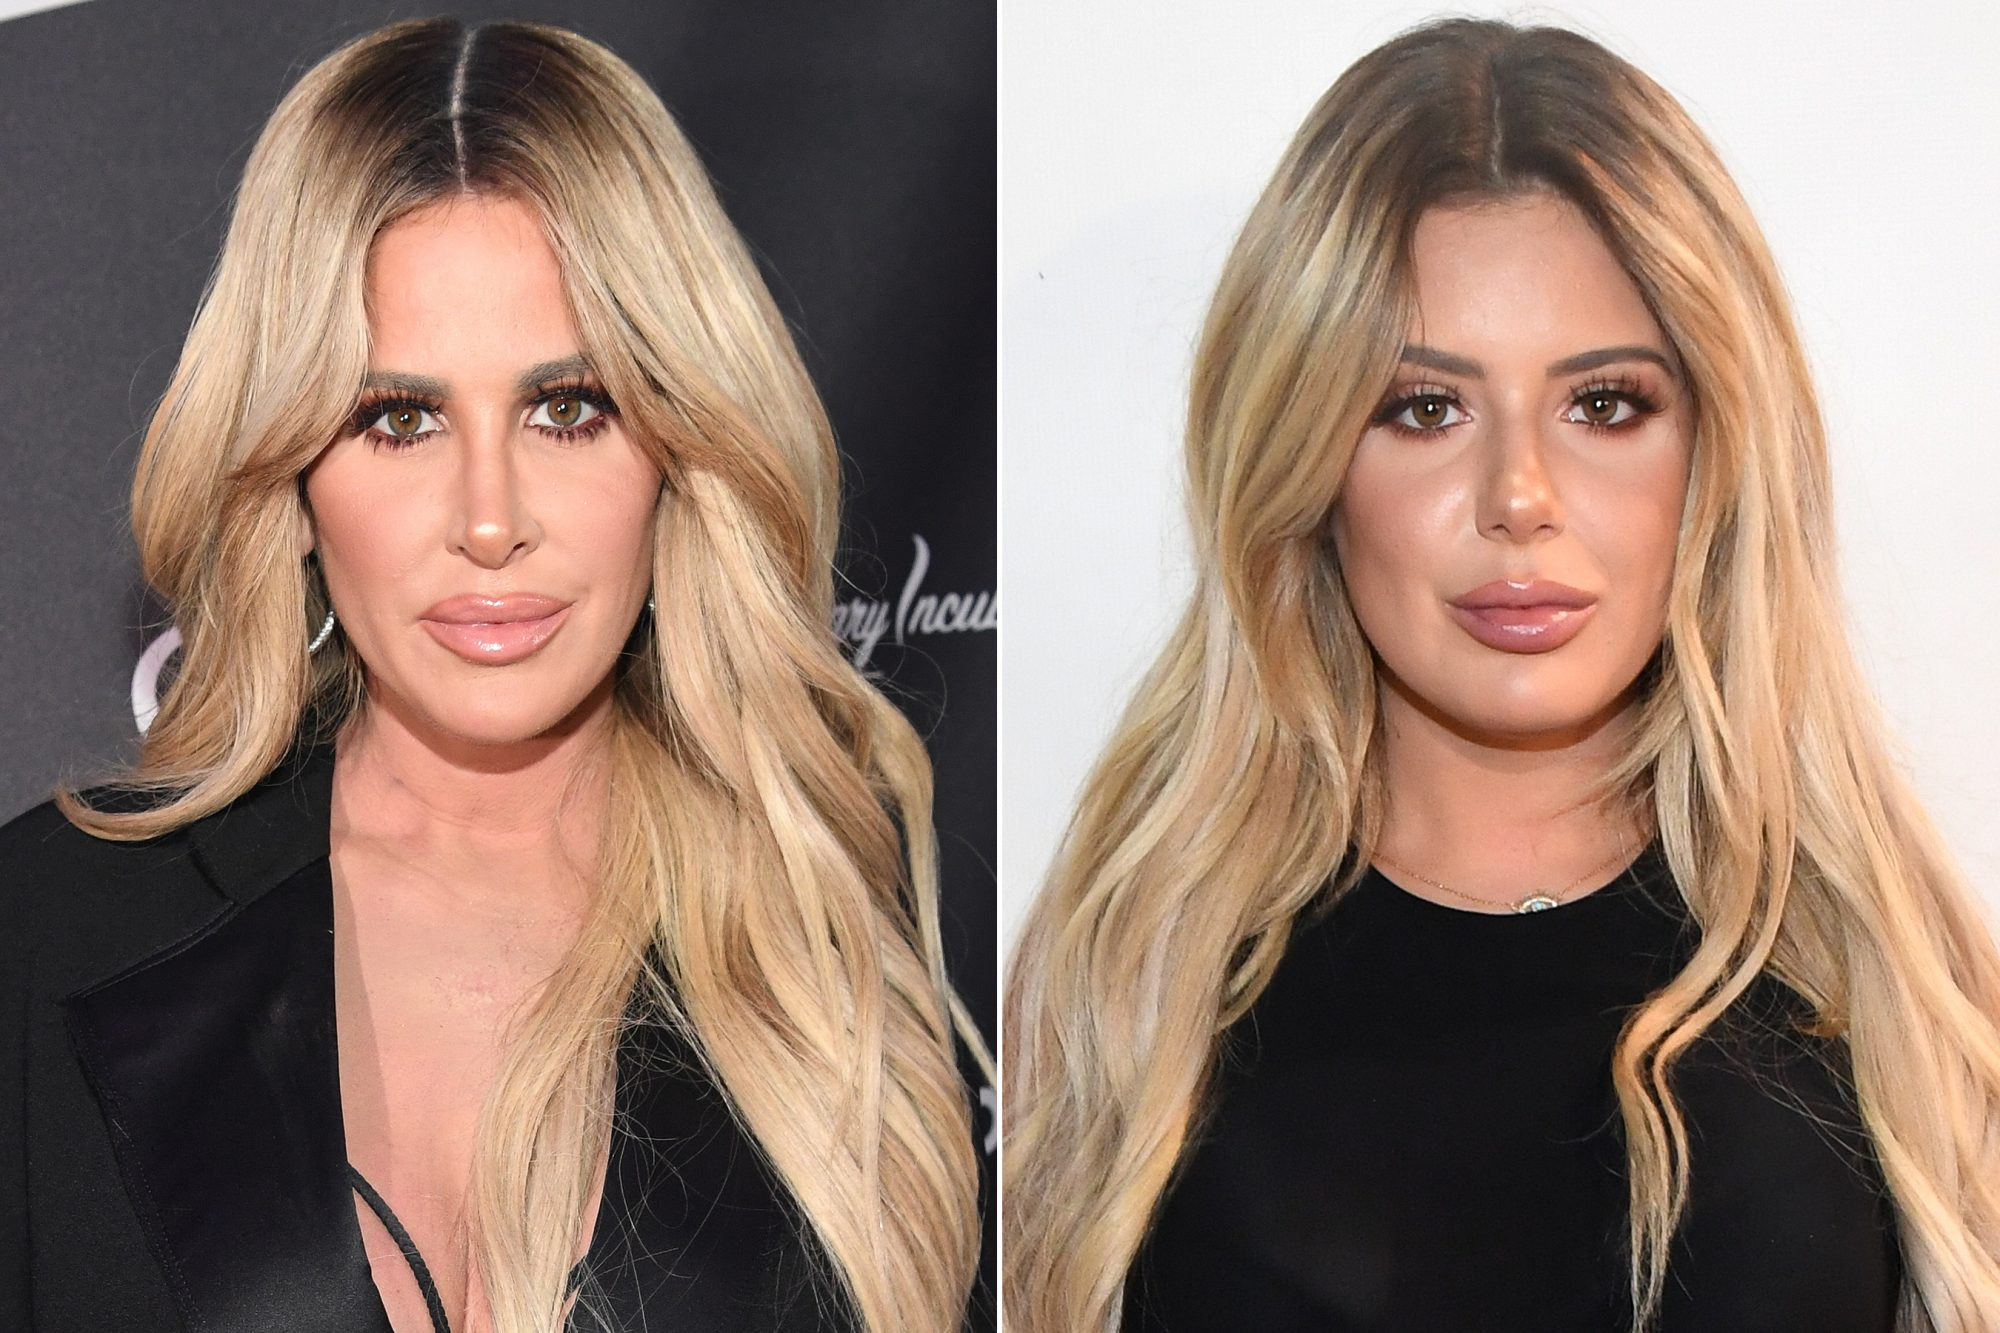 Kim Zolciak Biermann, Brielle Biermann